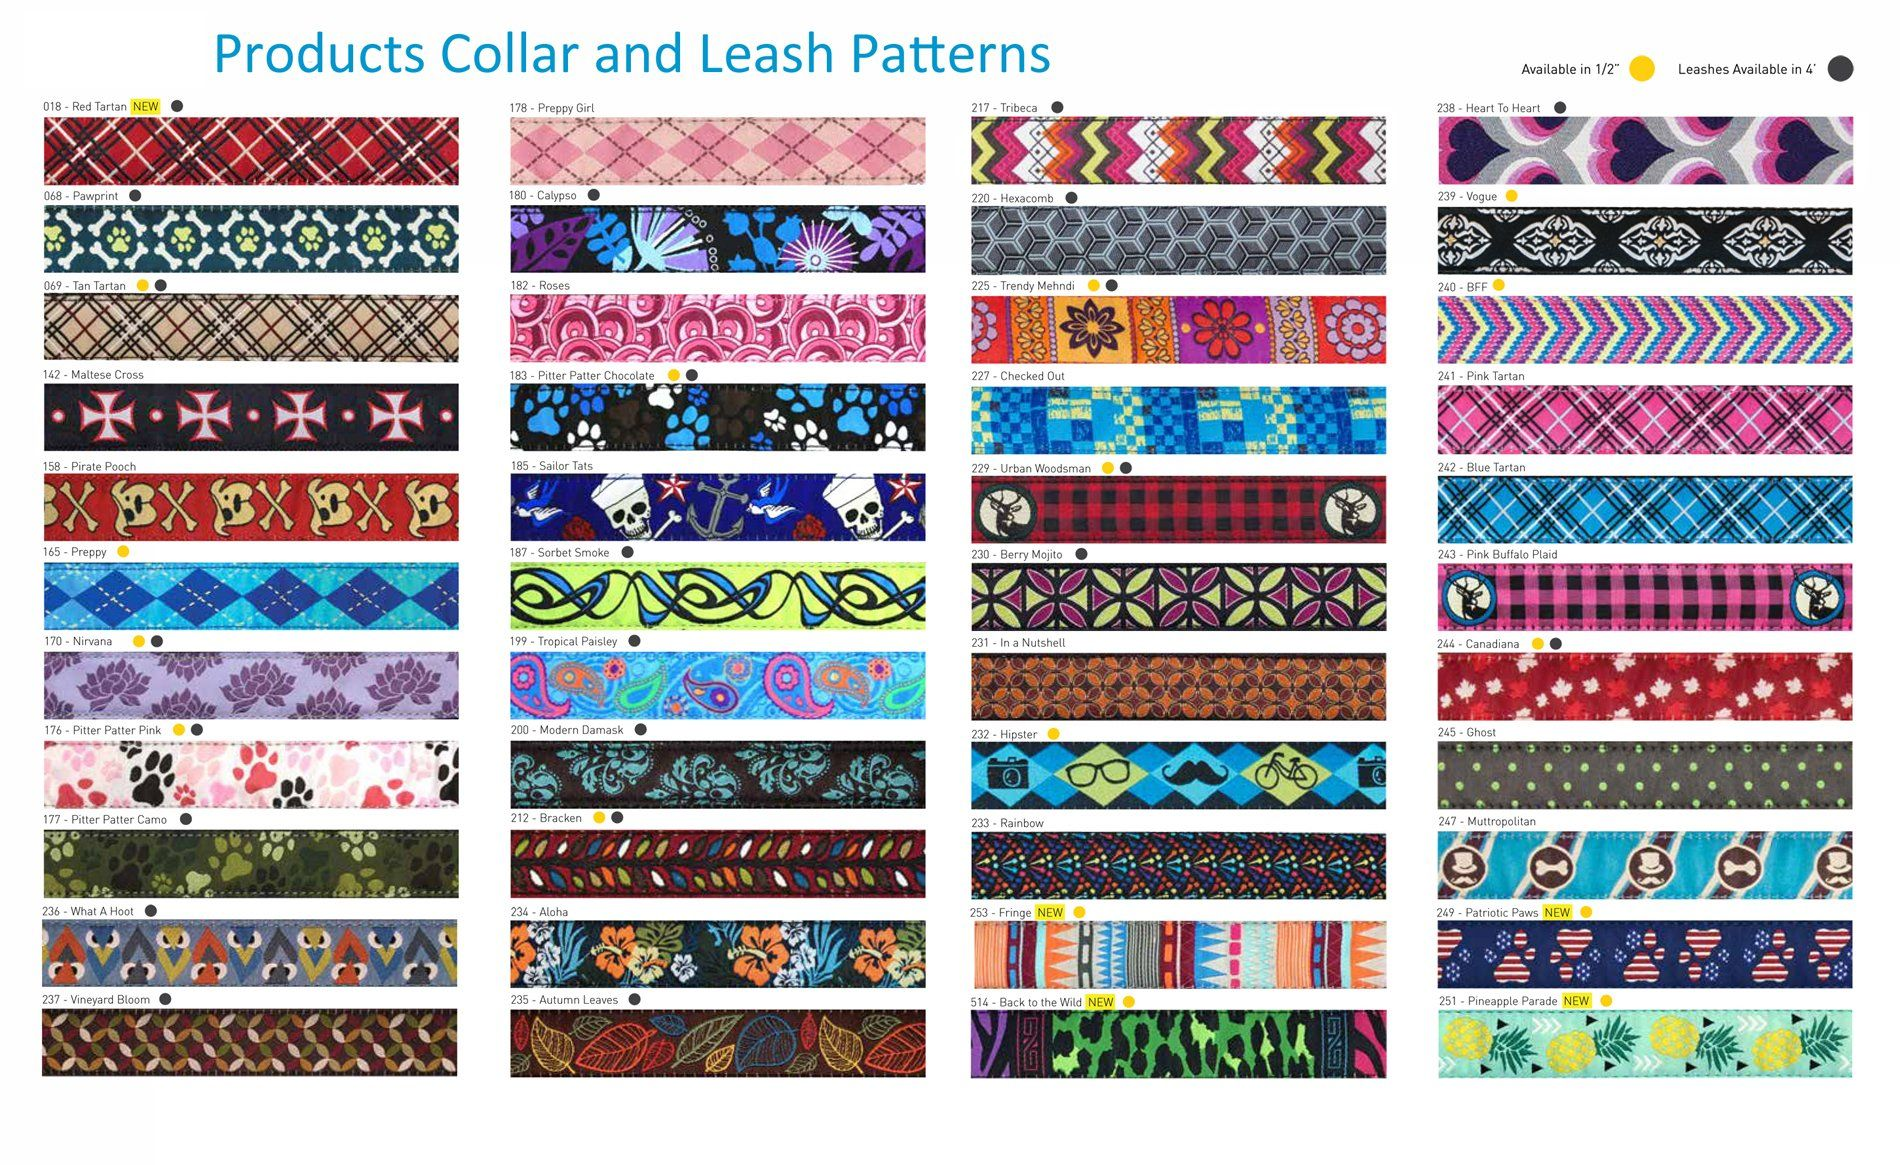 Rc Pet Products 1inch Training Martingale Collar Xlarge Sorbet Smoke See This Great Product This Is An Affil Martingale Collar Martingale Dog Collar Pets